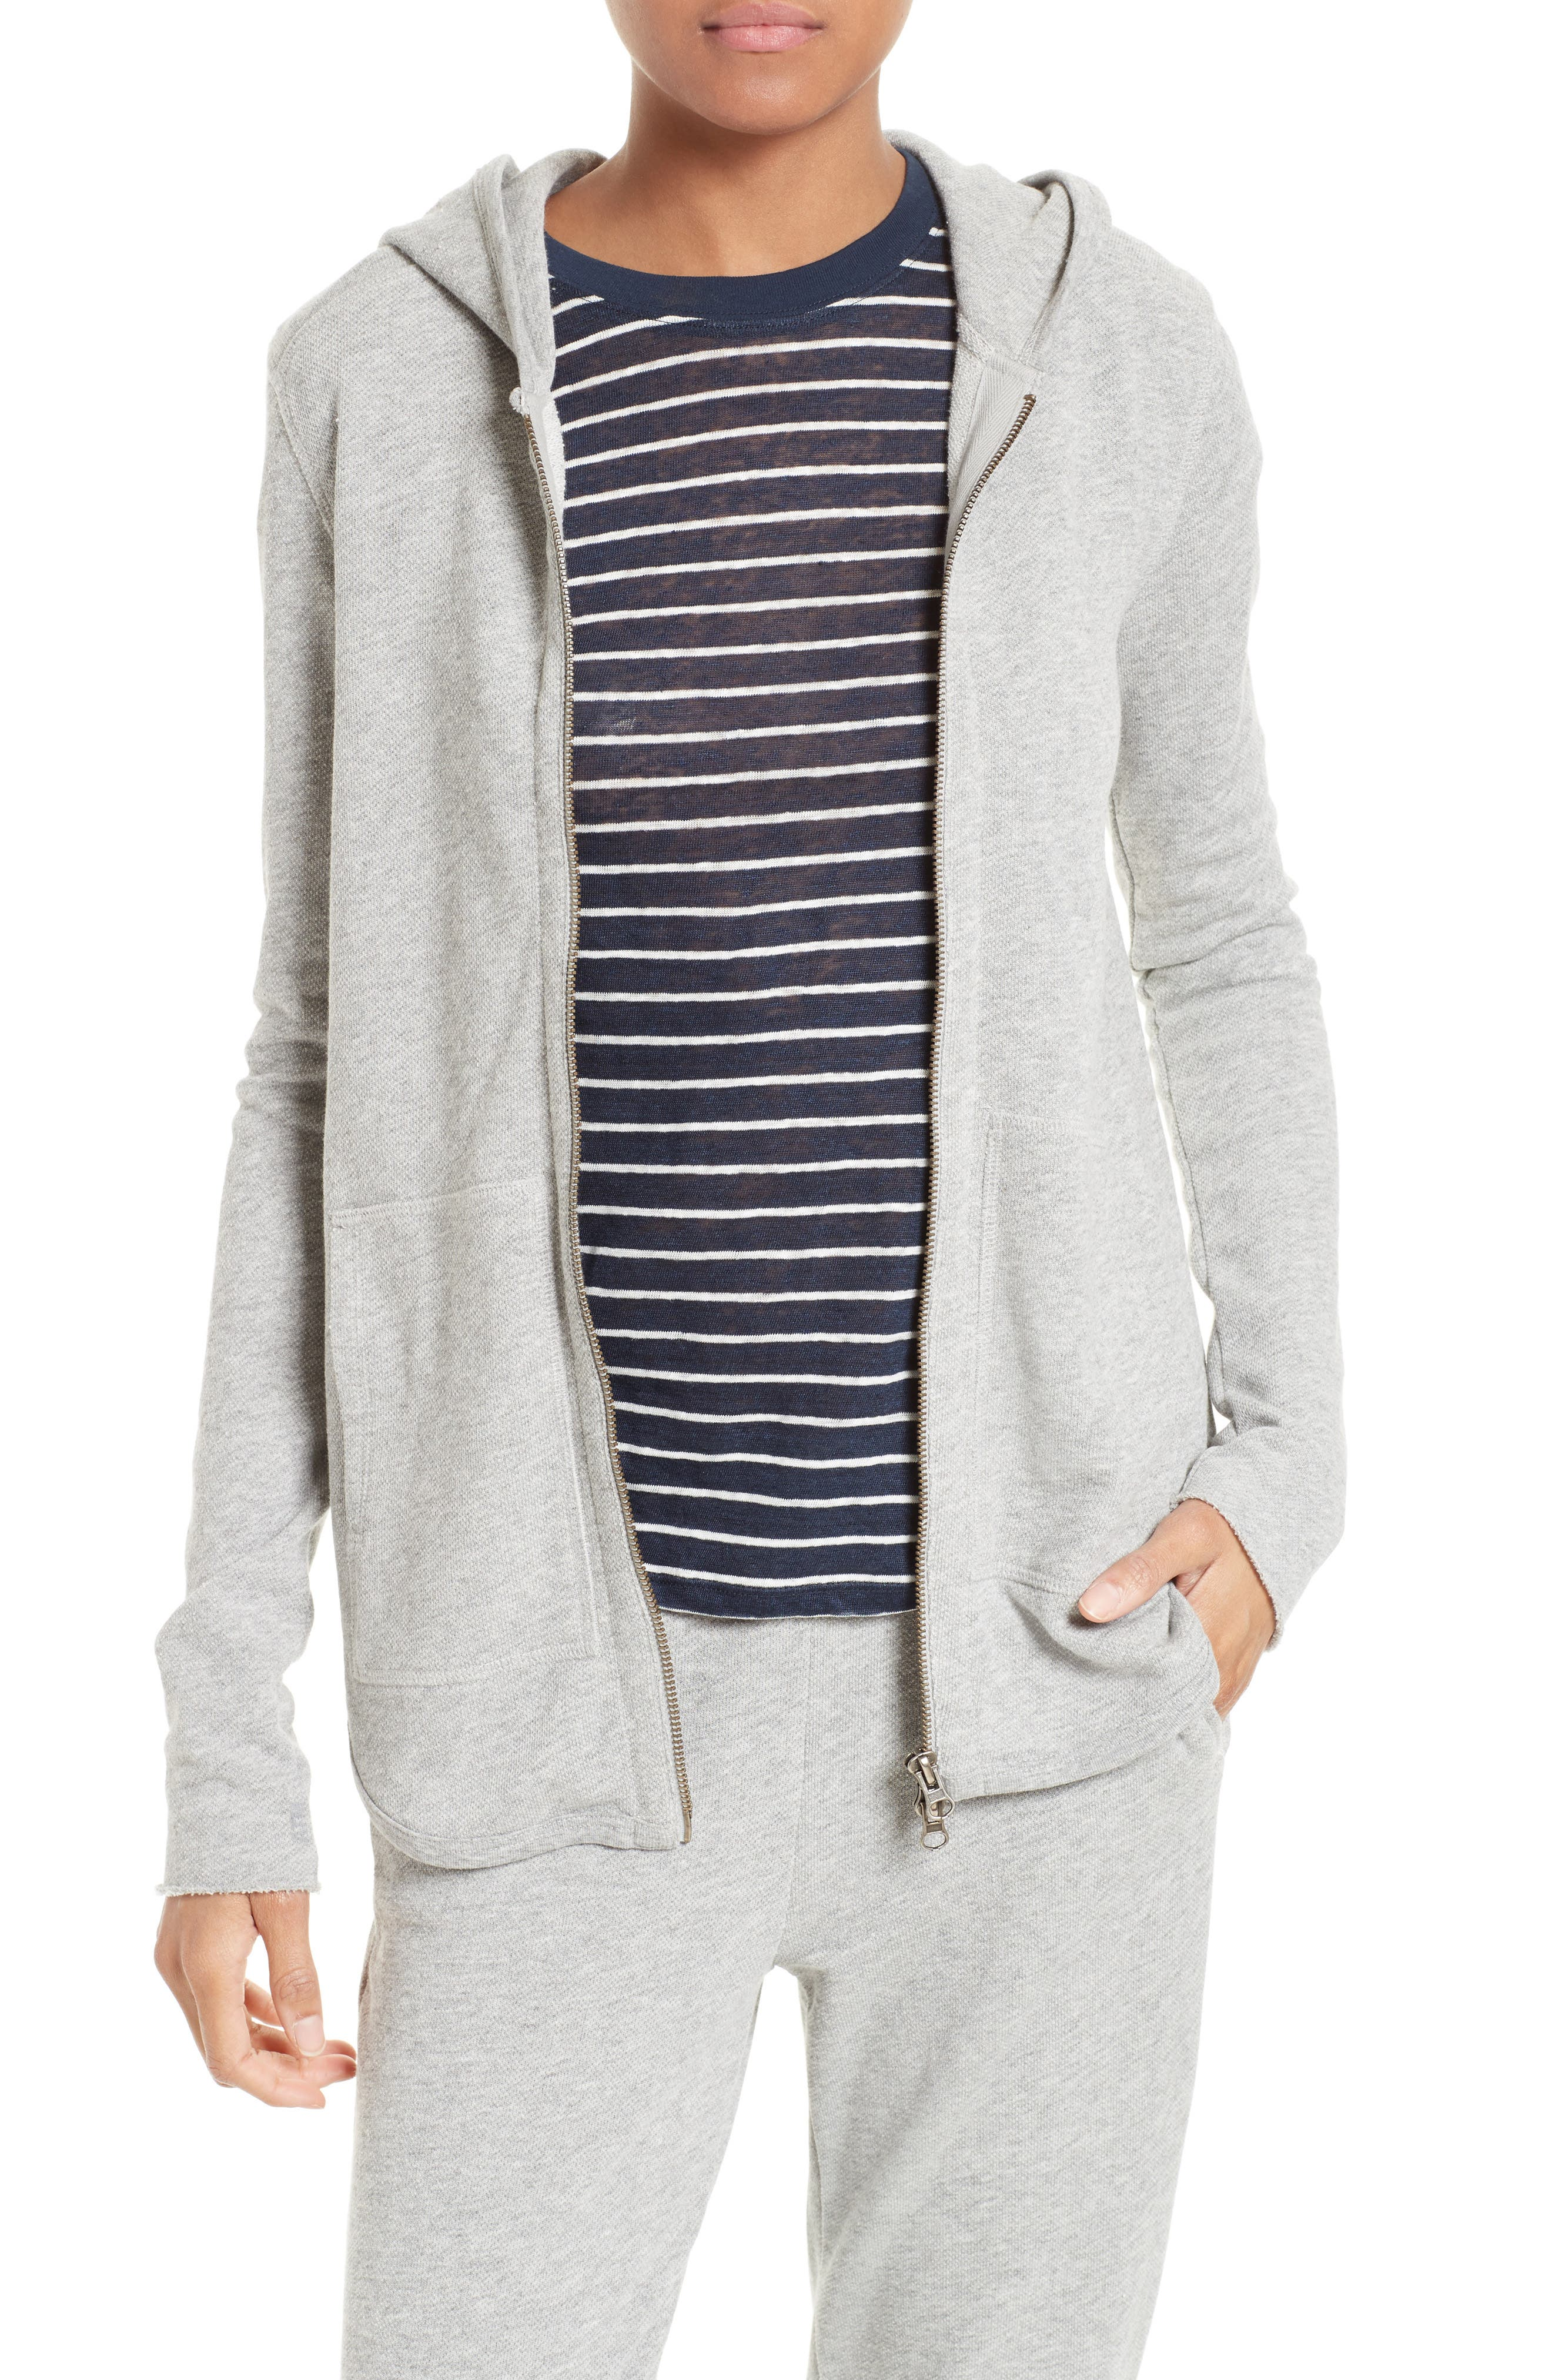 French Terry Zip Hoodie,                         Main,                         color, Heather Grey